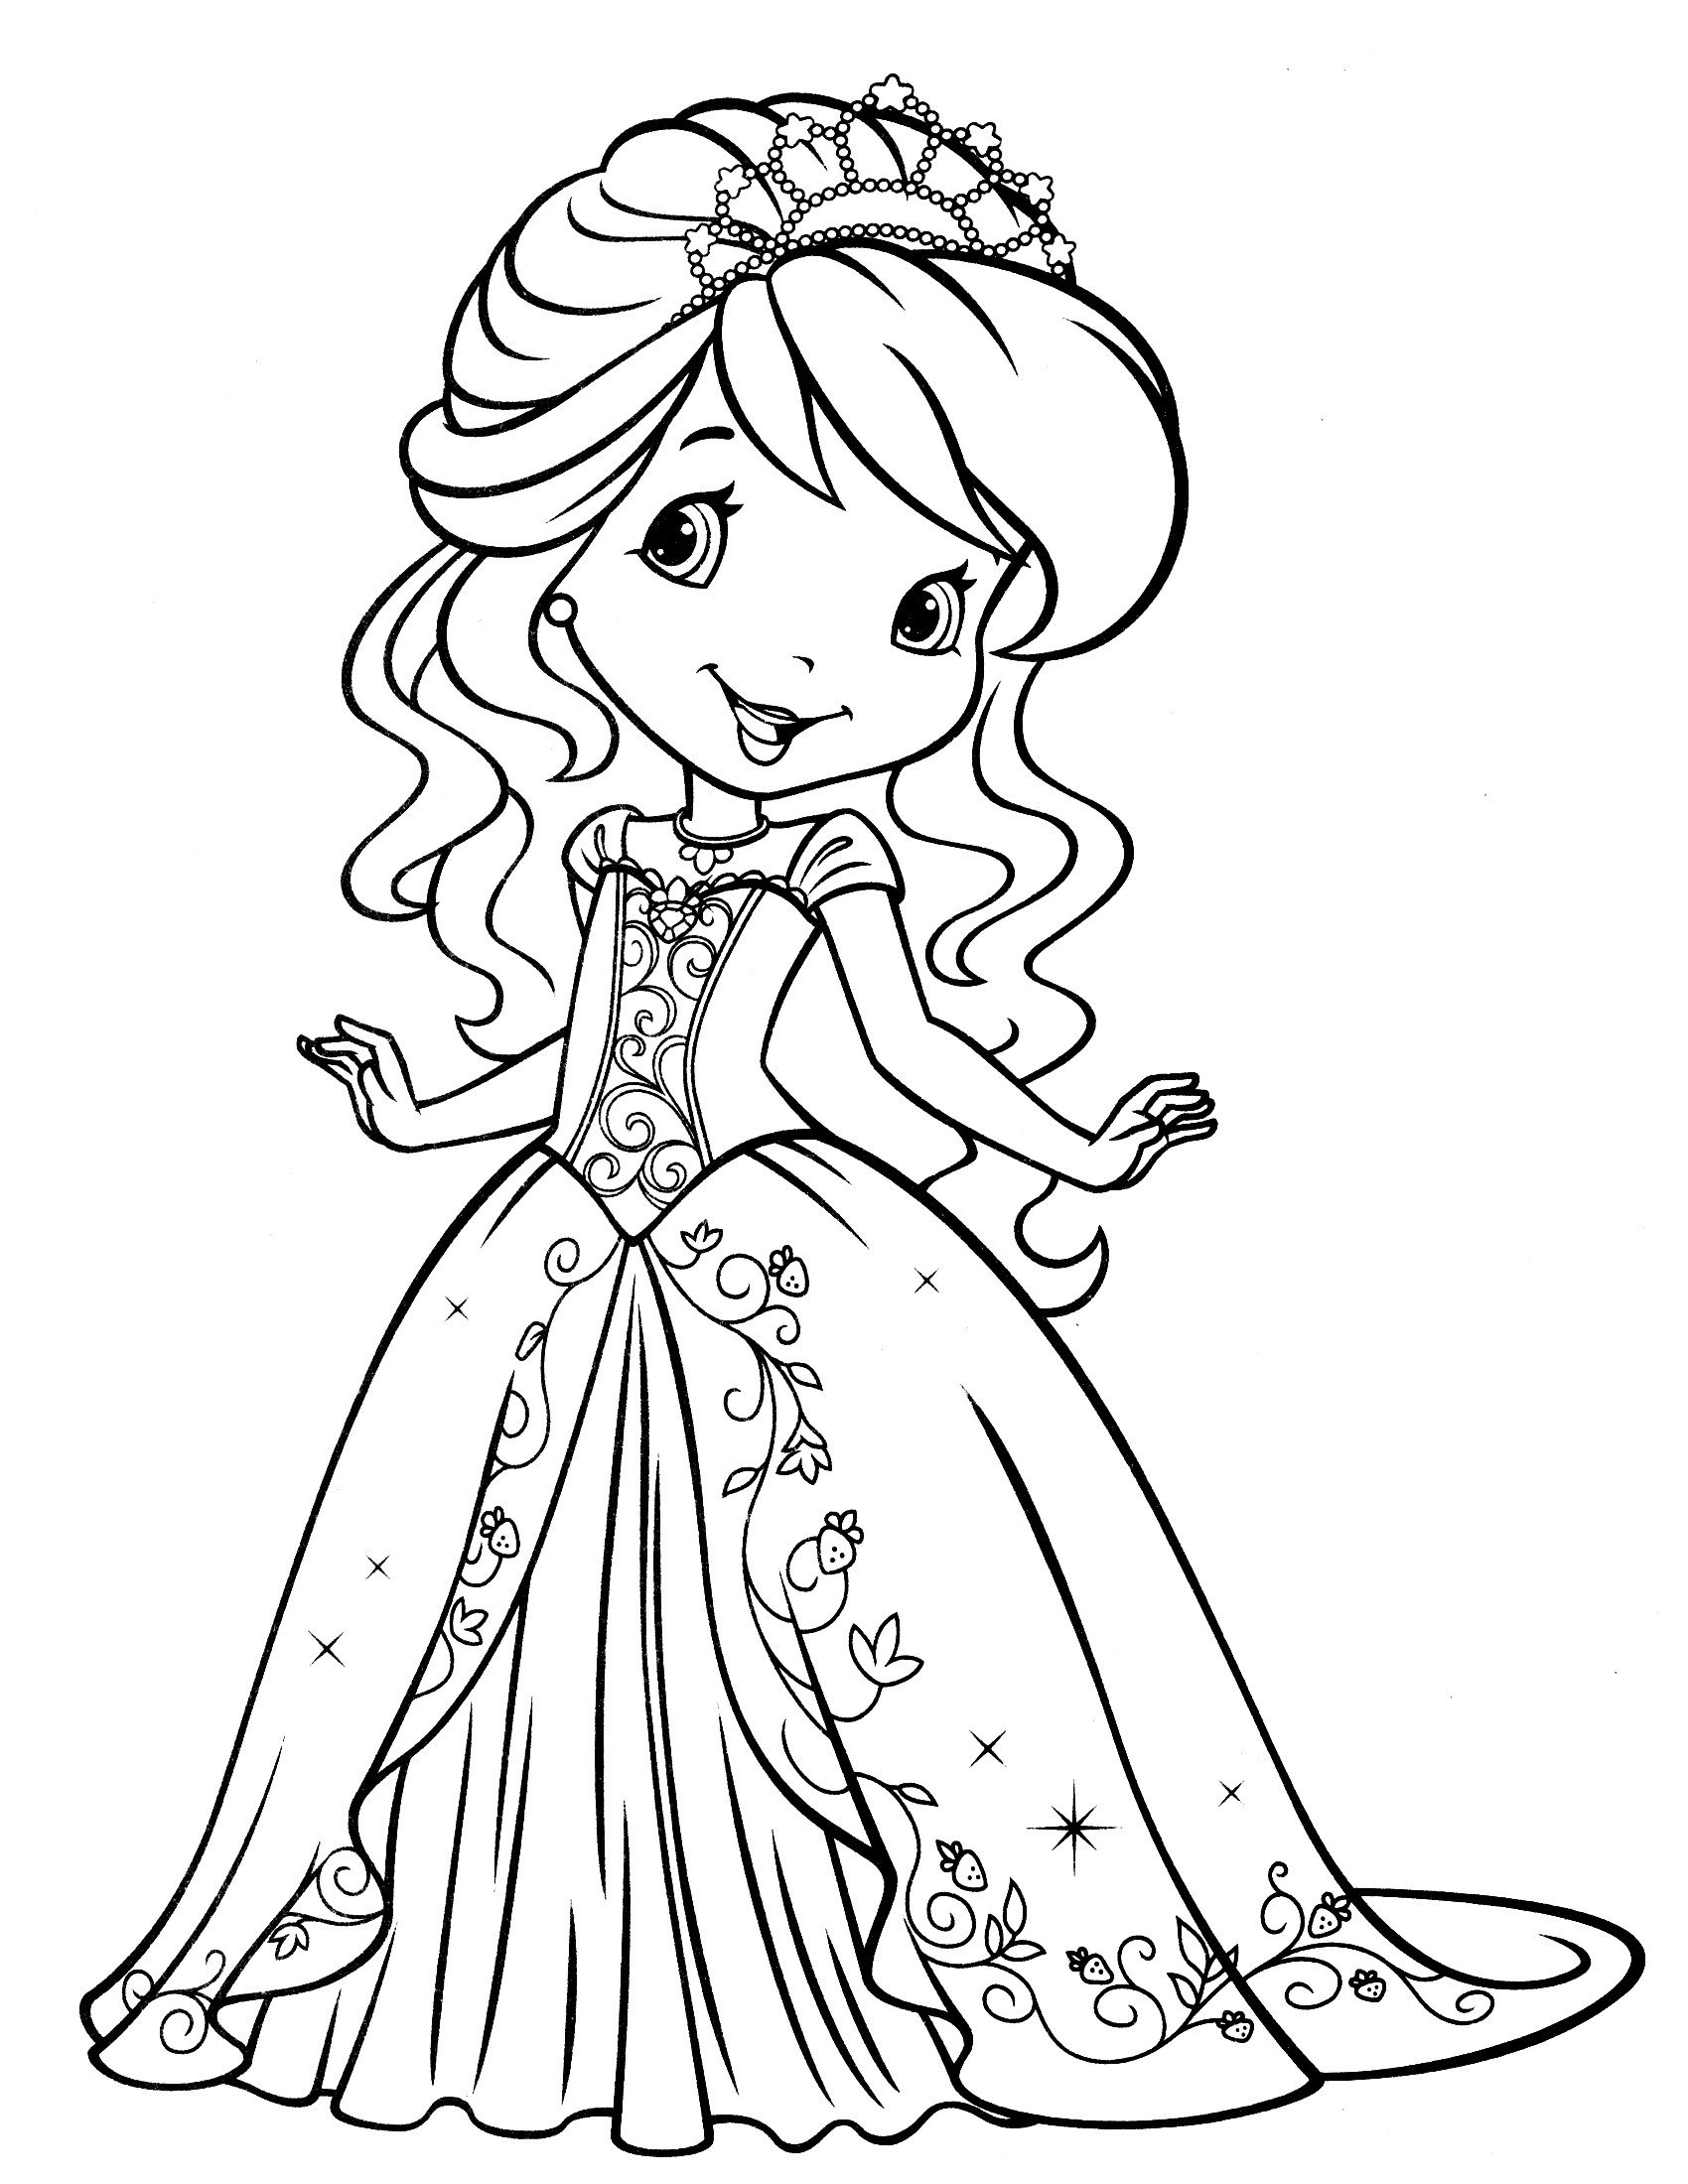 Best ideas about New Coloring Pages For Girls . Save or Pin American Girl Doll Coloring Pages Bestofcoloring Now.